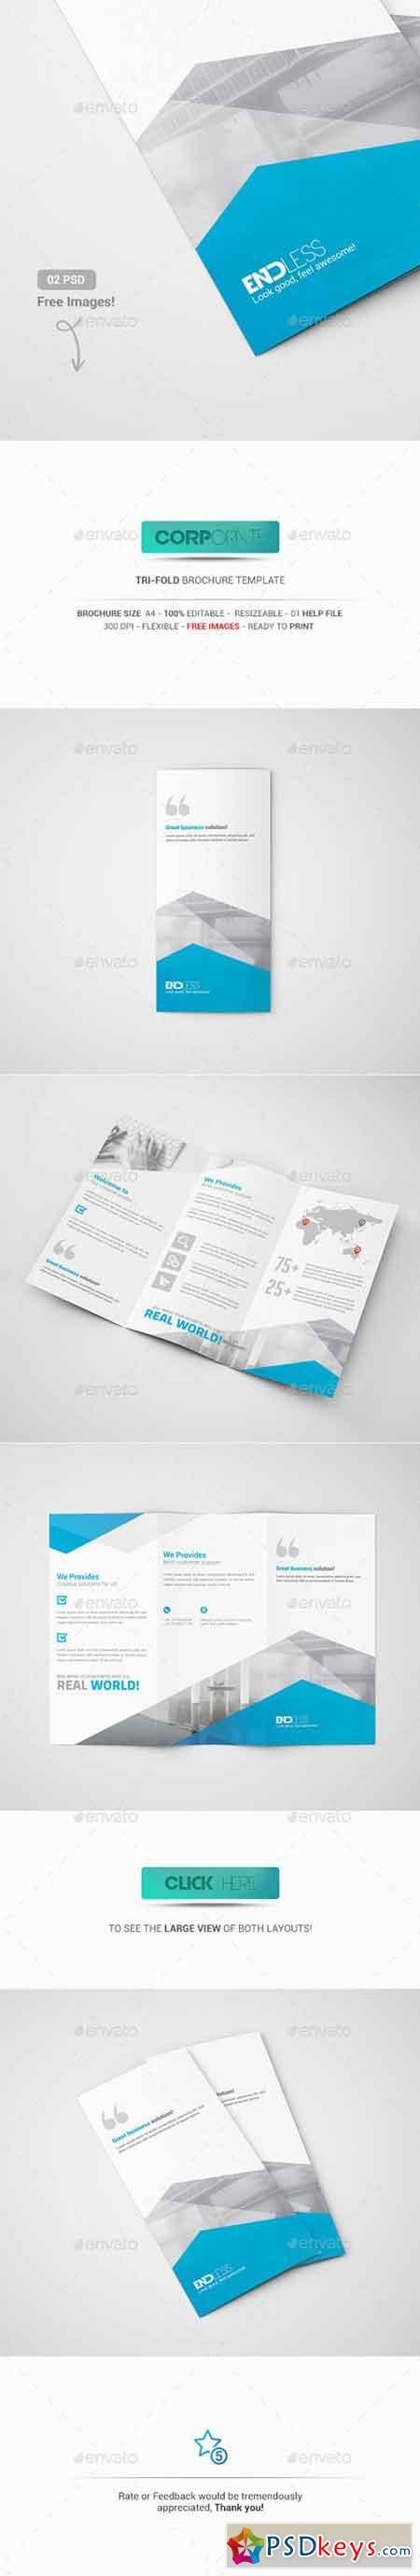 Tri fold brochure 13529405 free download photoshop for Tri fold brochure template photoshop free